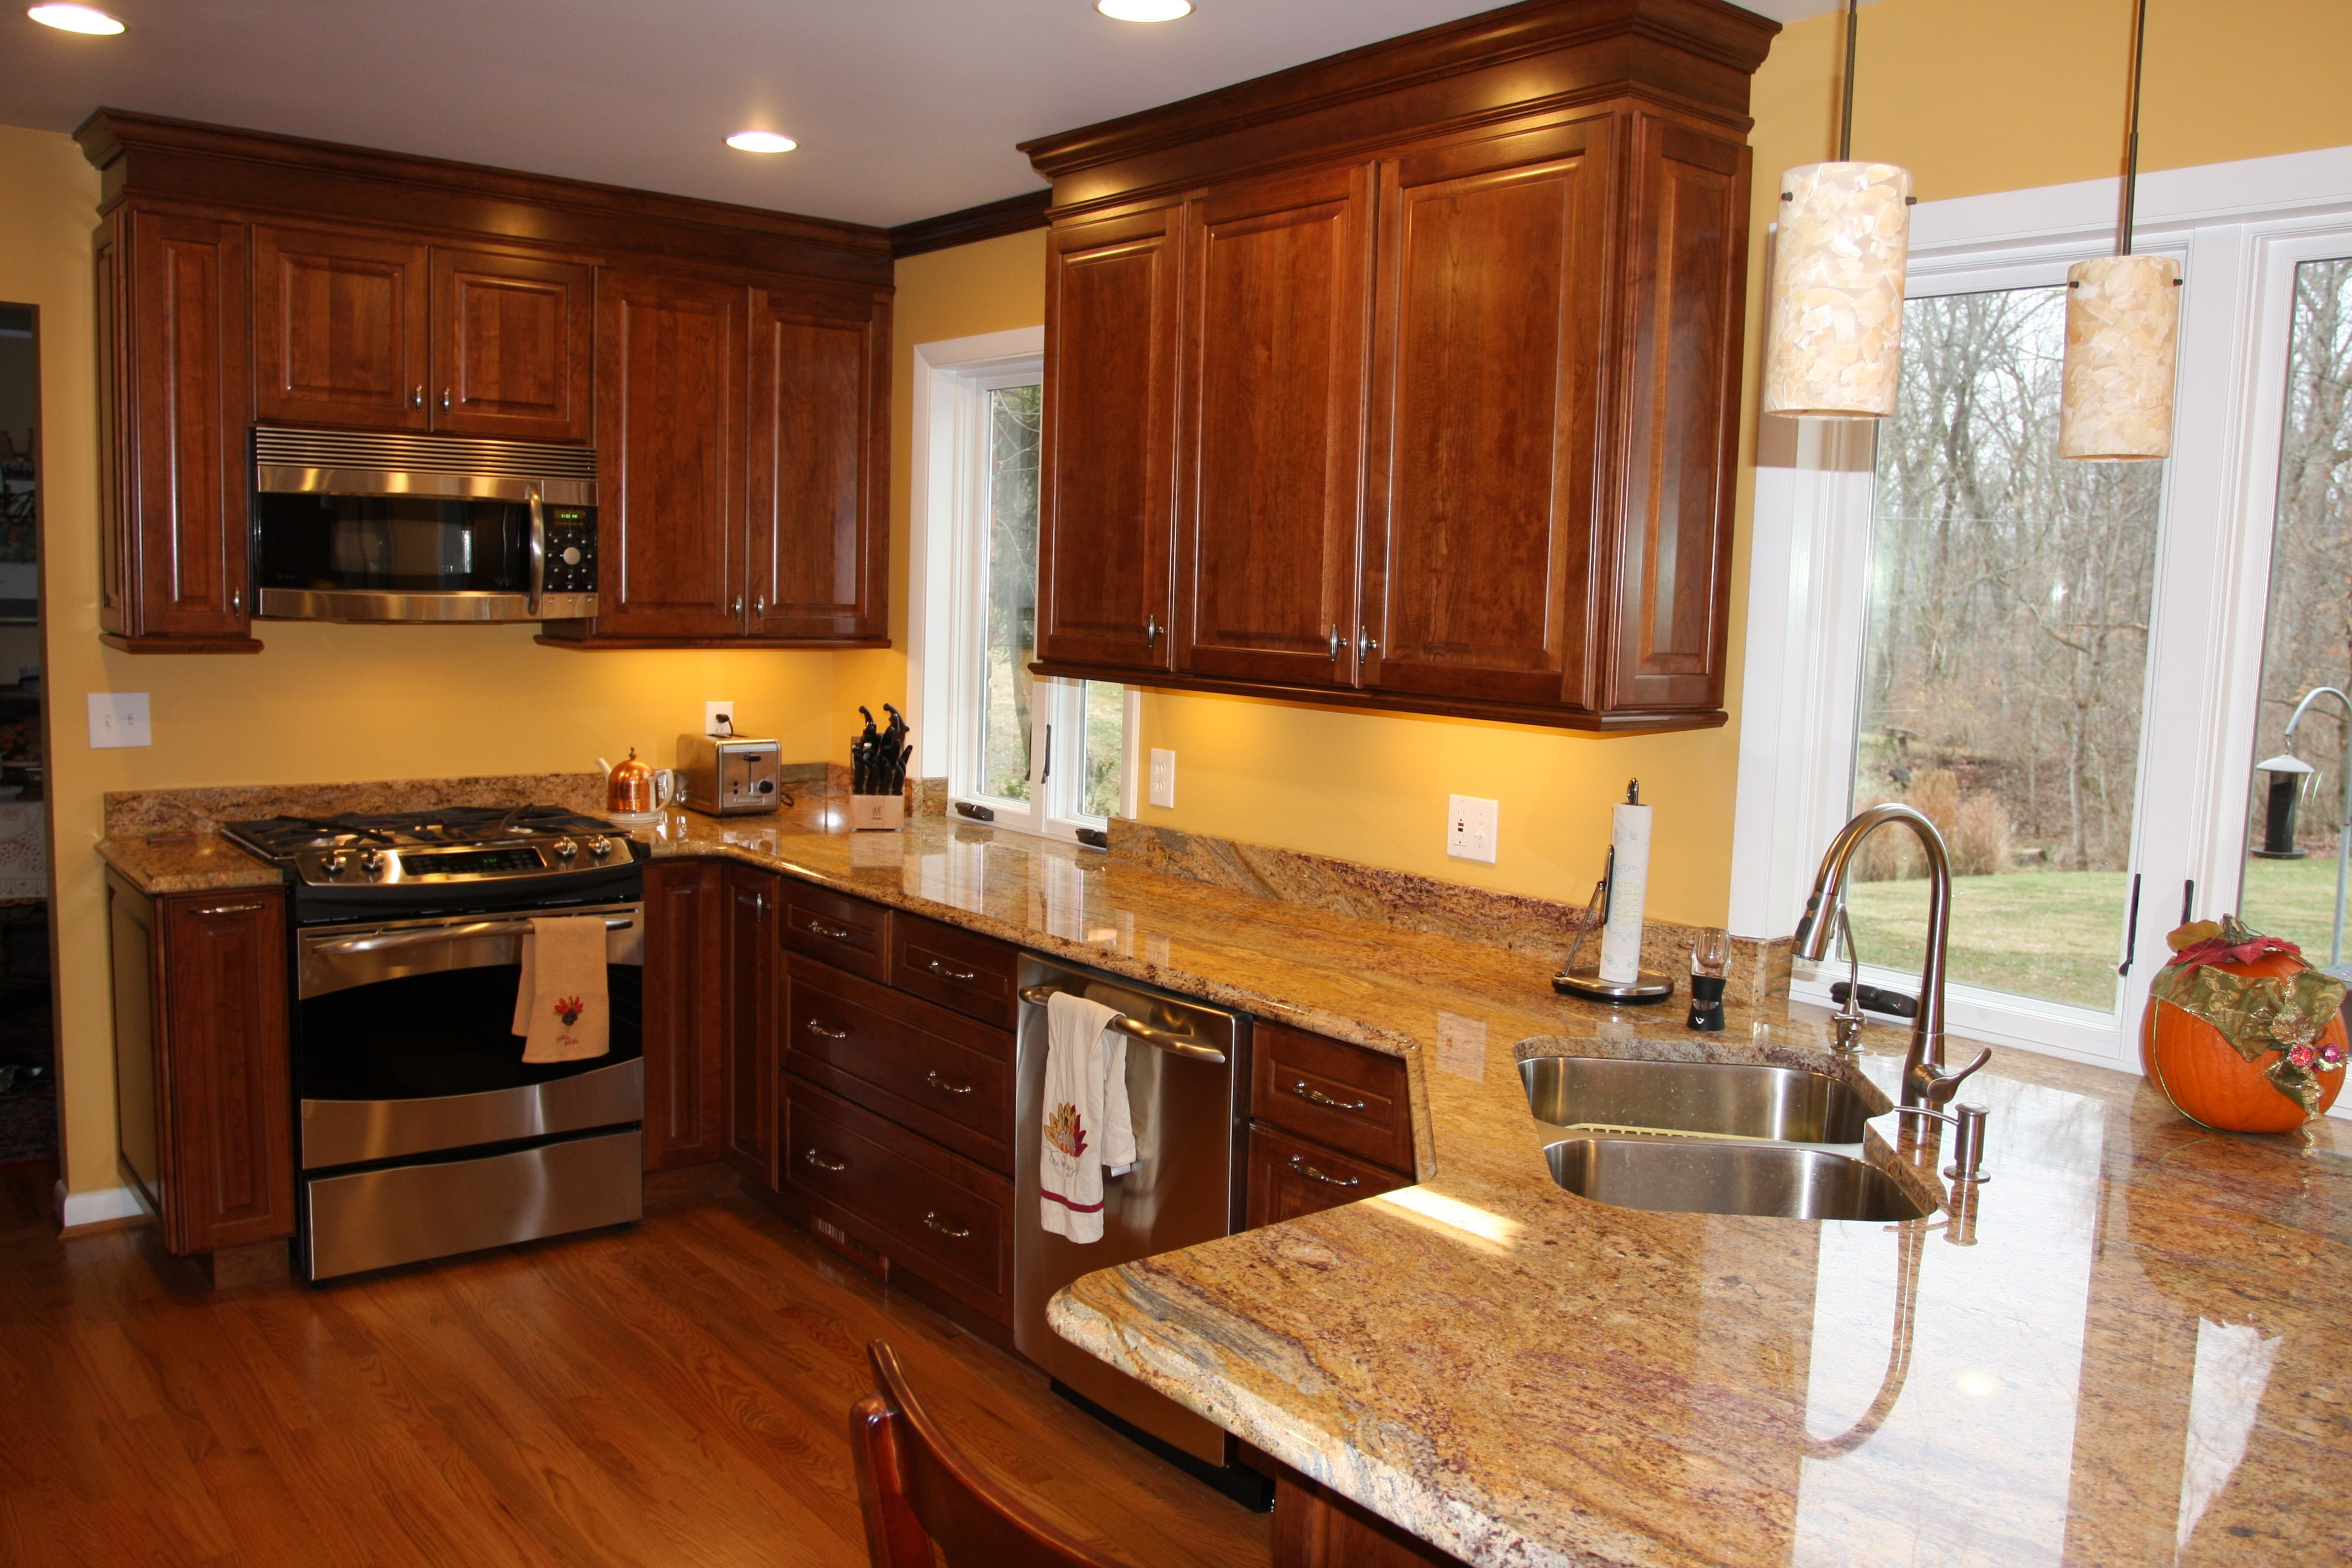 Color Schemes For Kitchens With Cherry Cabinets